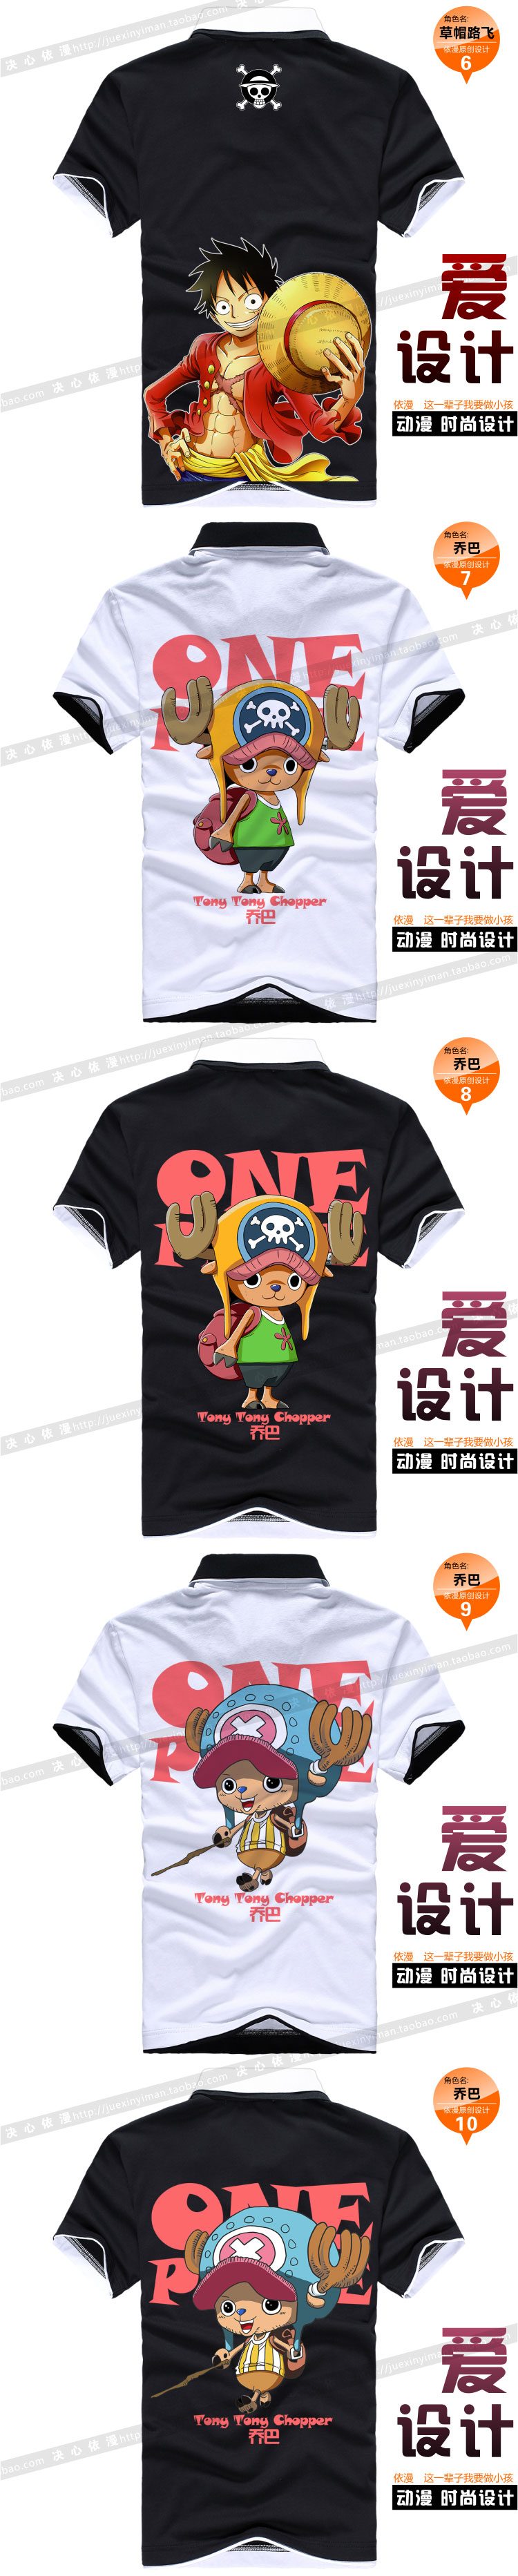 By diffuse One Piece Anime Costume By Diffuse Peripheral T-Shirt Polo Shirt Lufeiqiaoba Xiangjishi